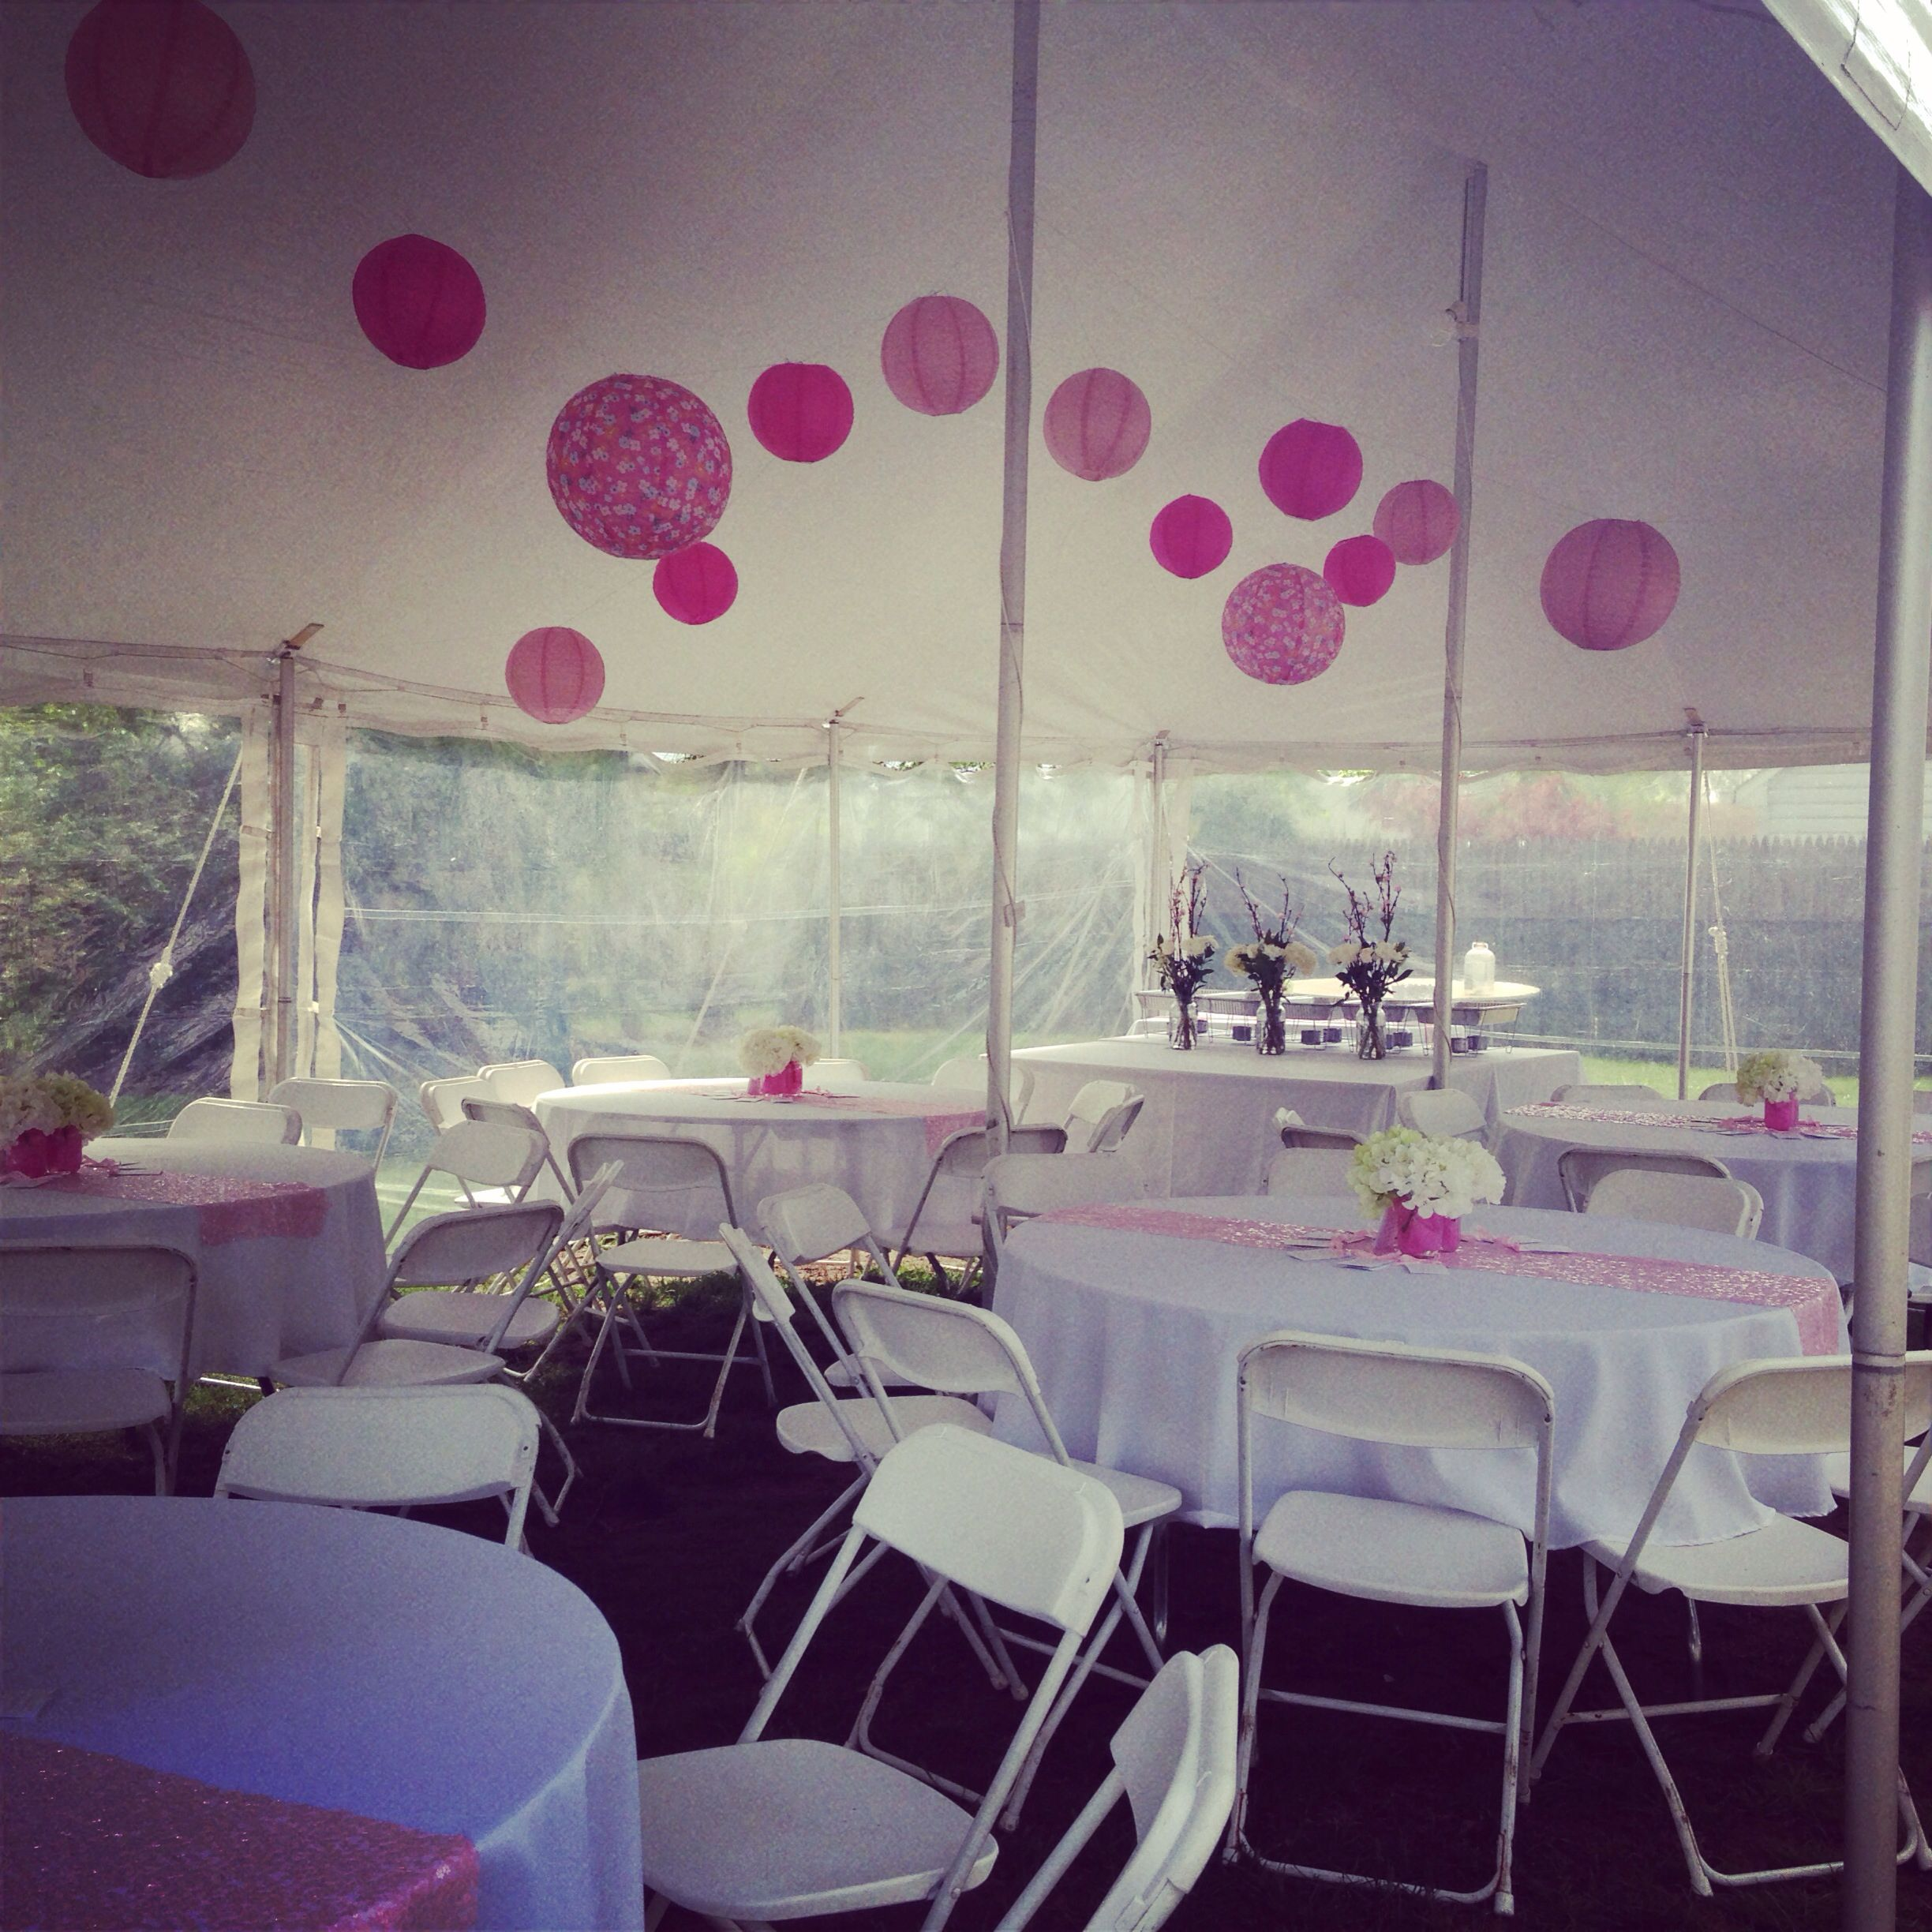 Our tent (With images) | Tent, Decor, Home decor